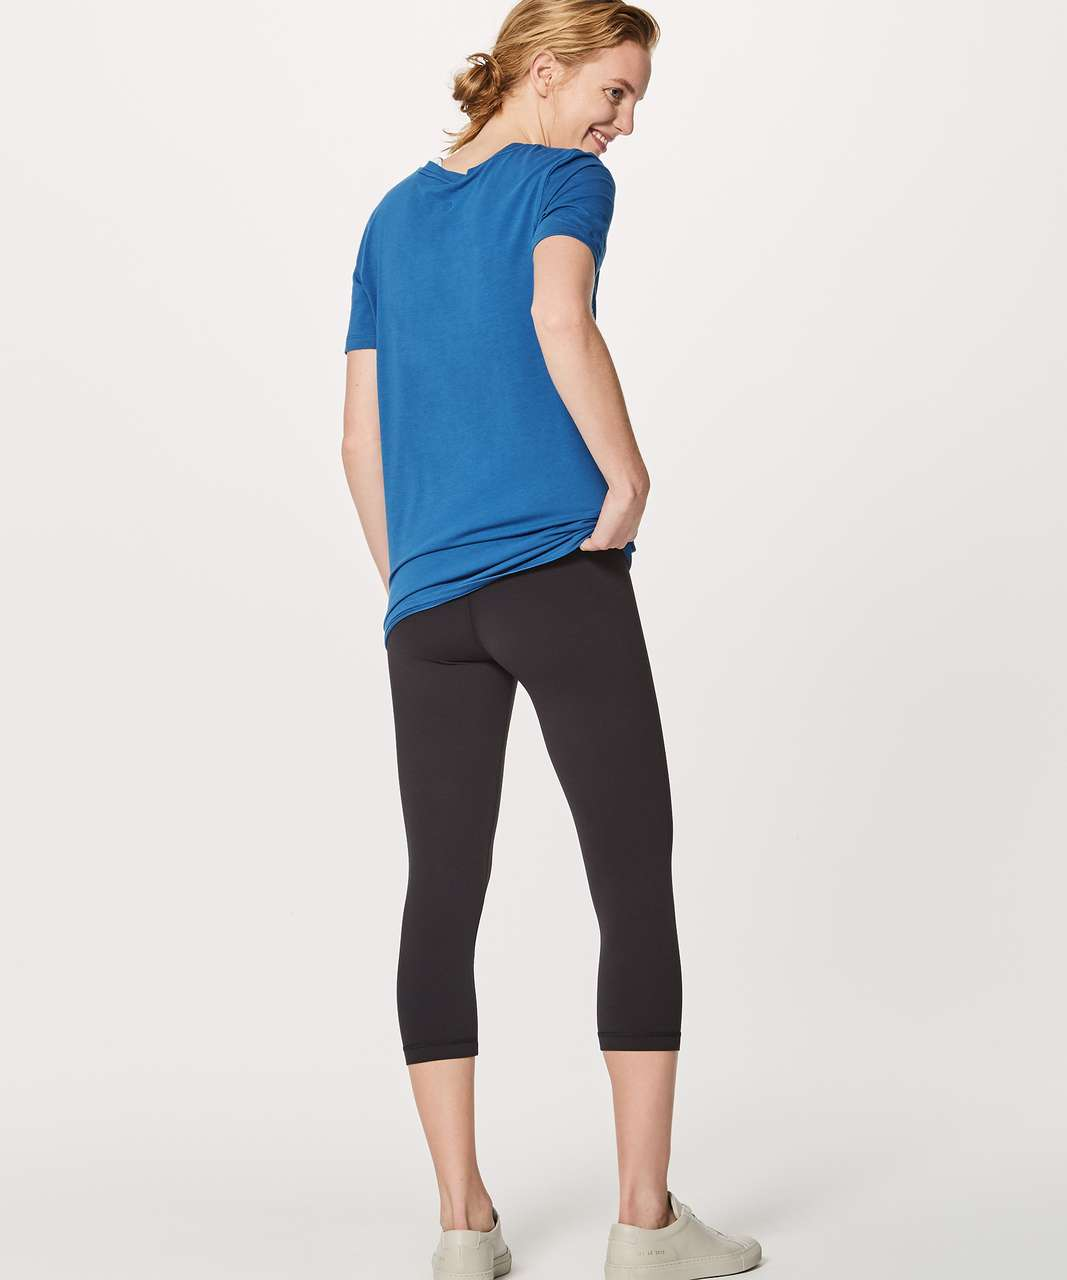 Lululemon Love Tee IV - Royal